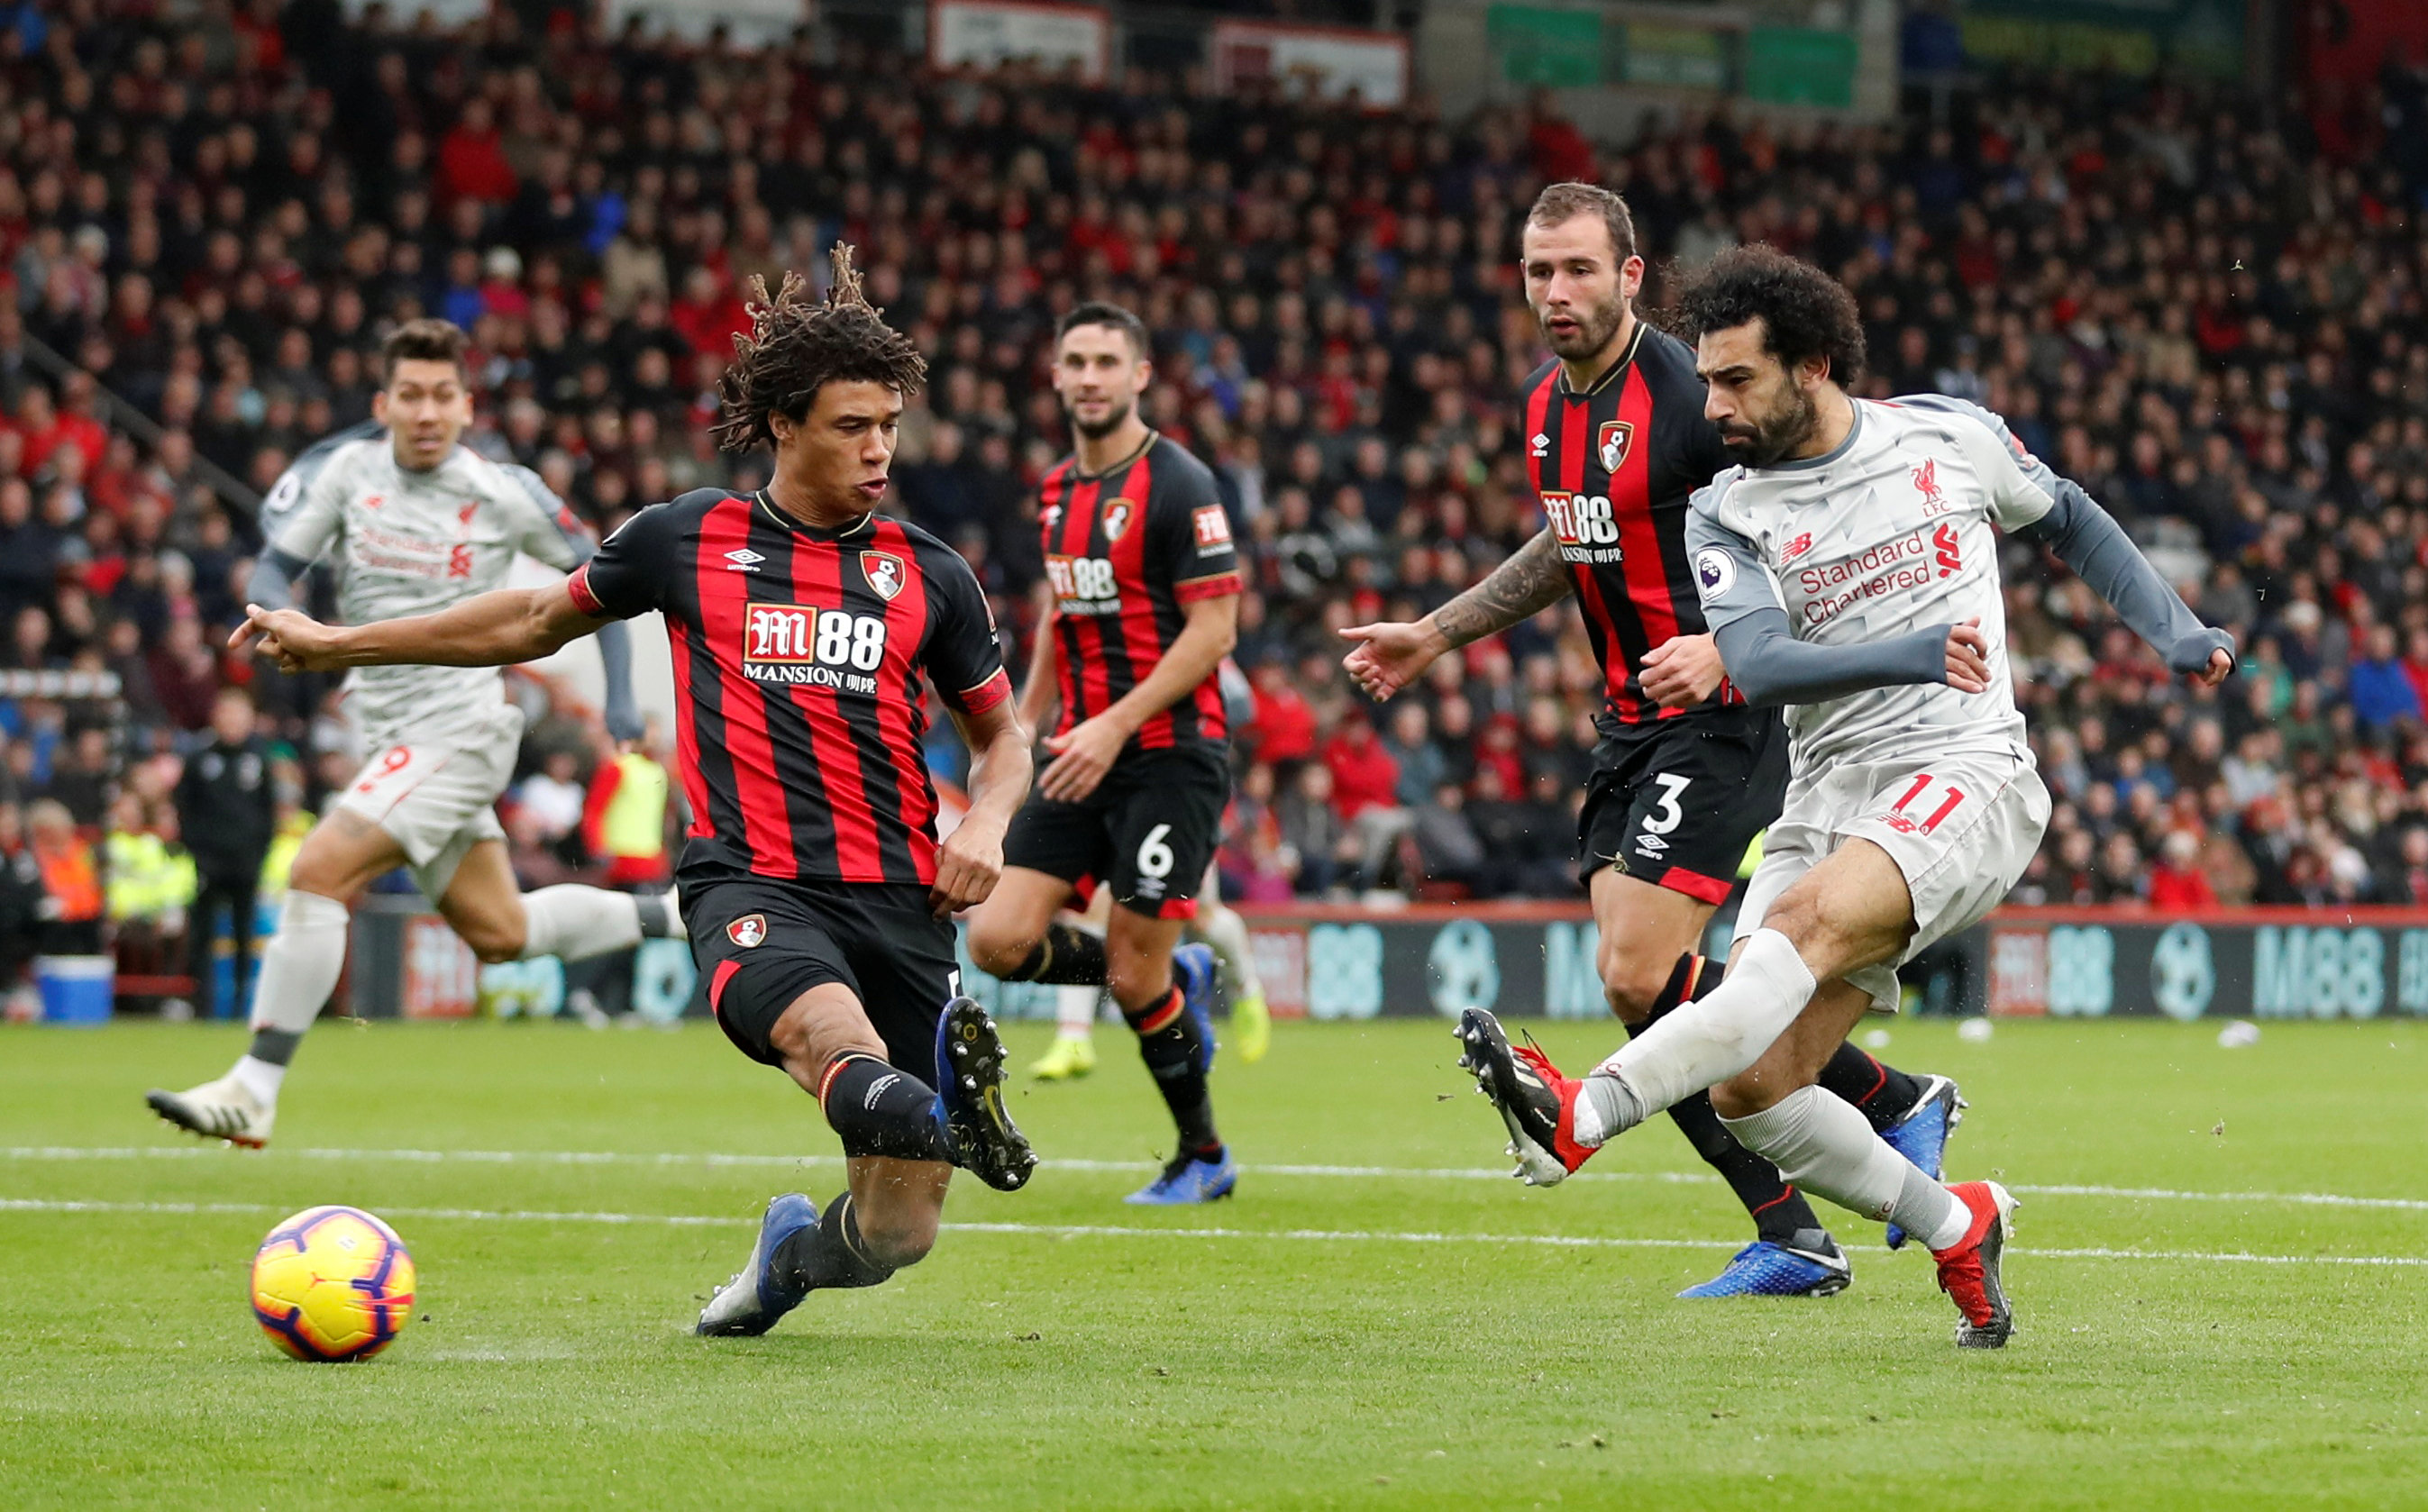 Soccer Football - Premier League - AFC Bournemouth v Liverpool - Vitality Stadium, Bournemouth, Britain - December 8, 2018  Liverpool's Mohamed Salah scores their second goal.   Action Images via Reuters